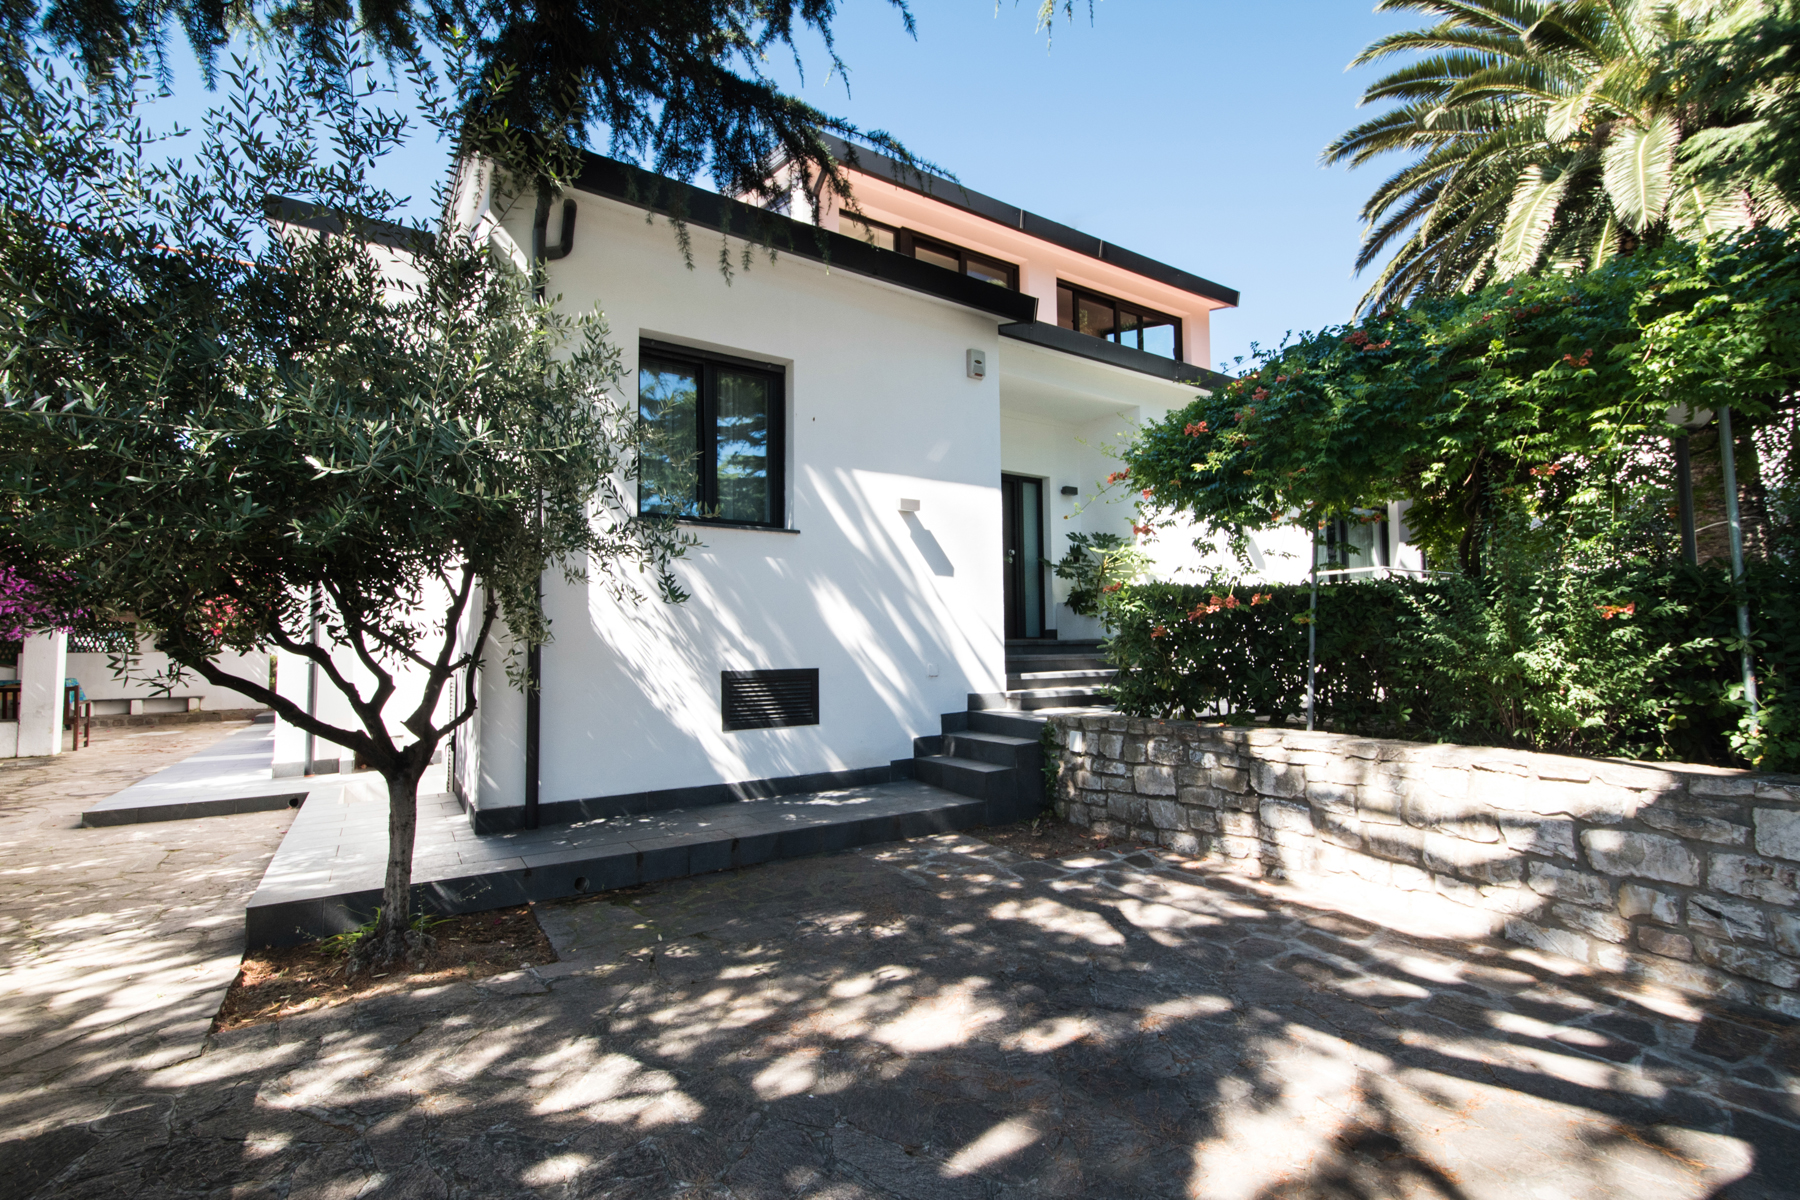 Single Family Home for Sale at Discreet villa with garden on Elba Via Murzi Marciana Marina, Livorno 57033 Italy